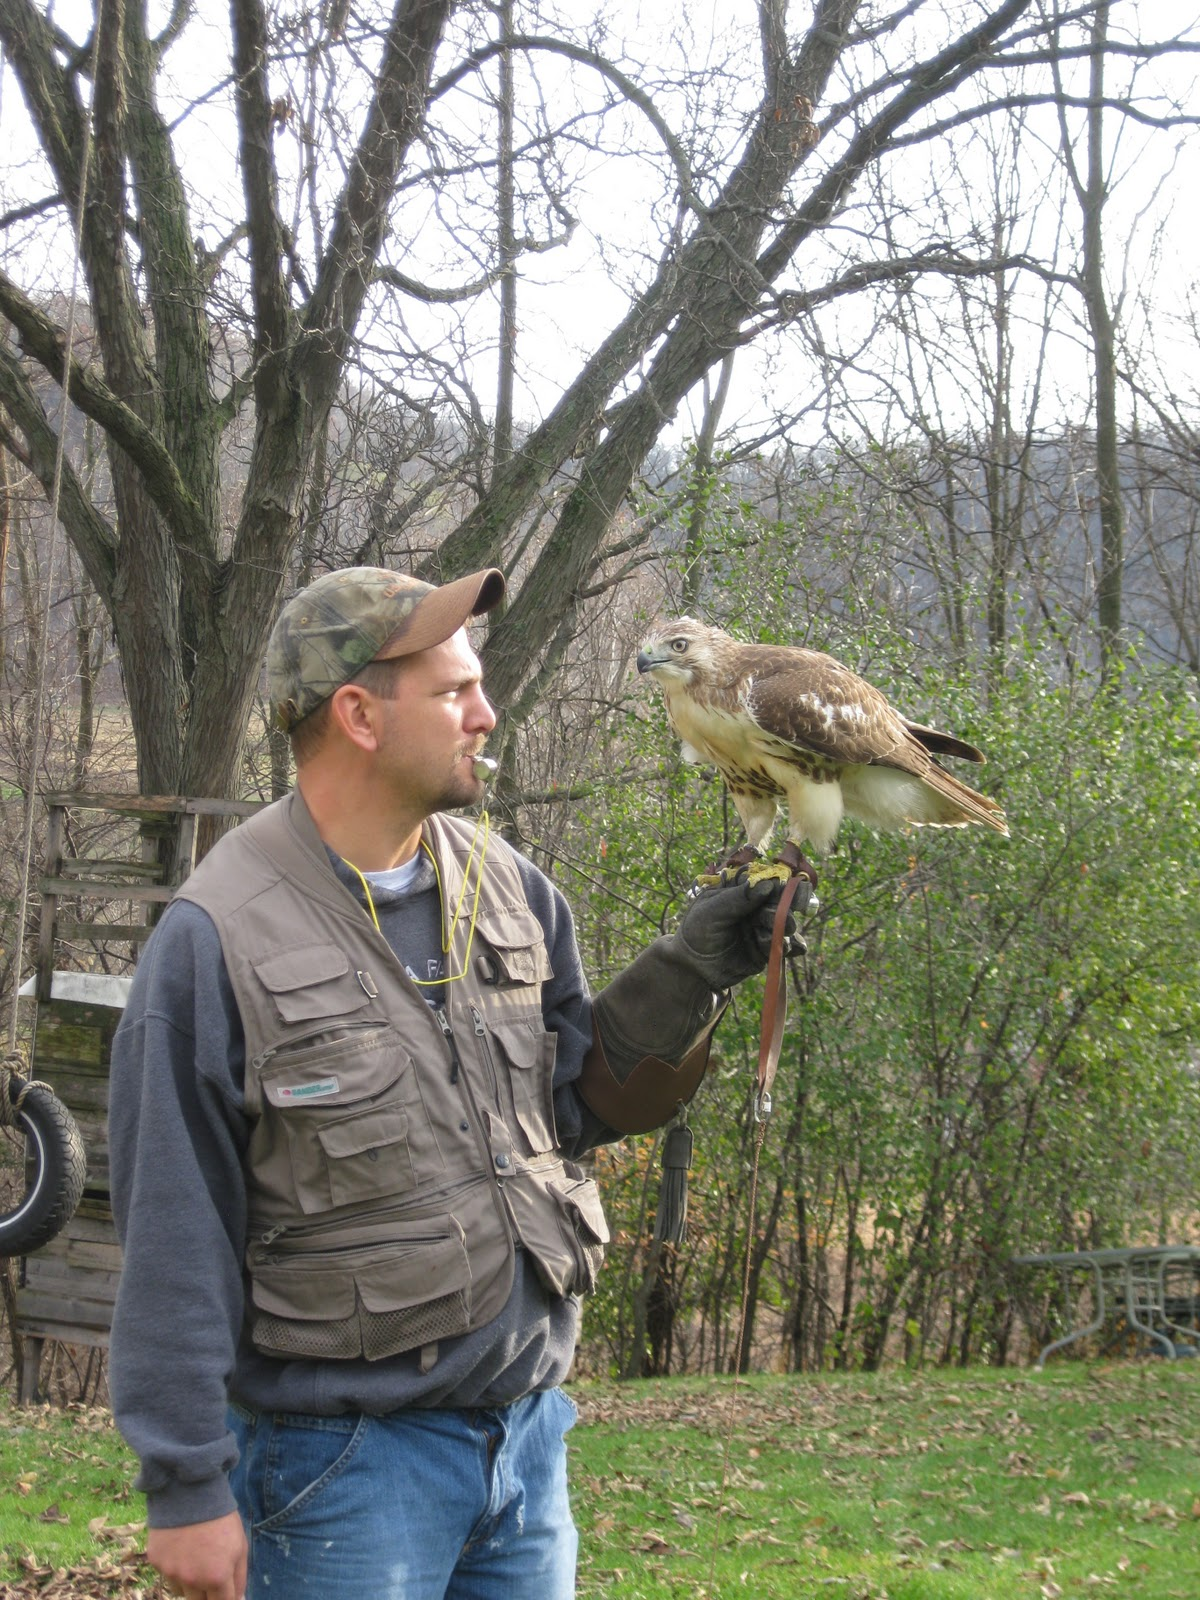 how to get into falconry in ontario